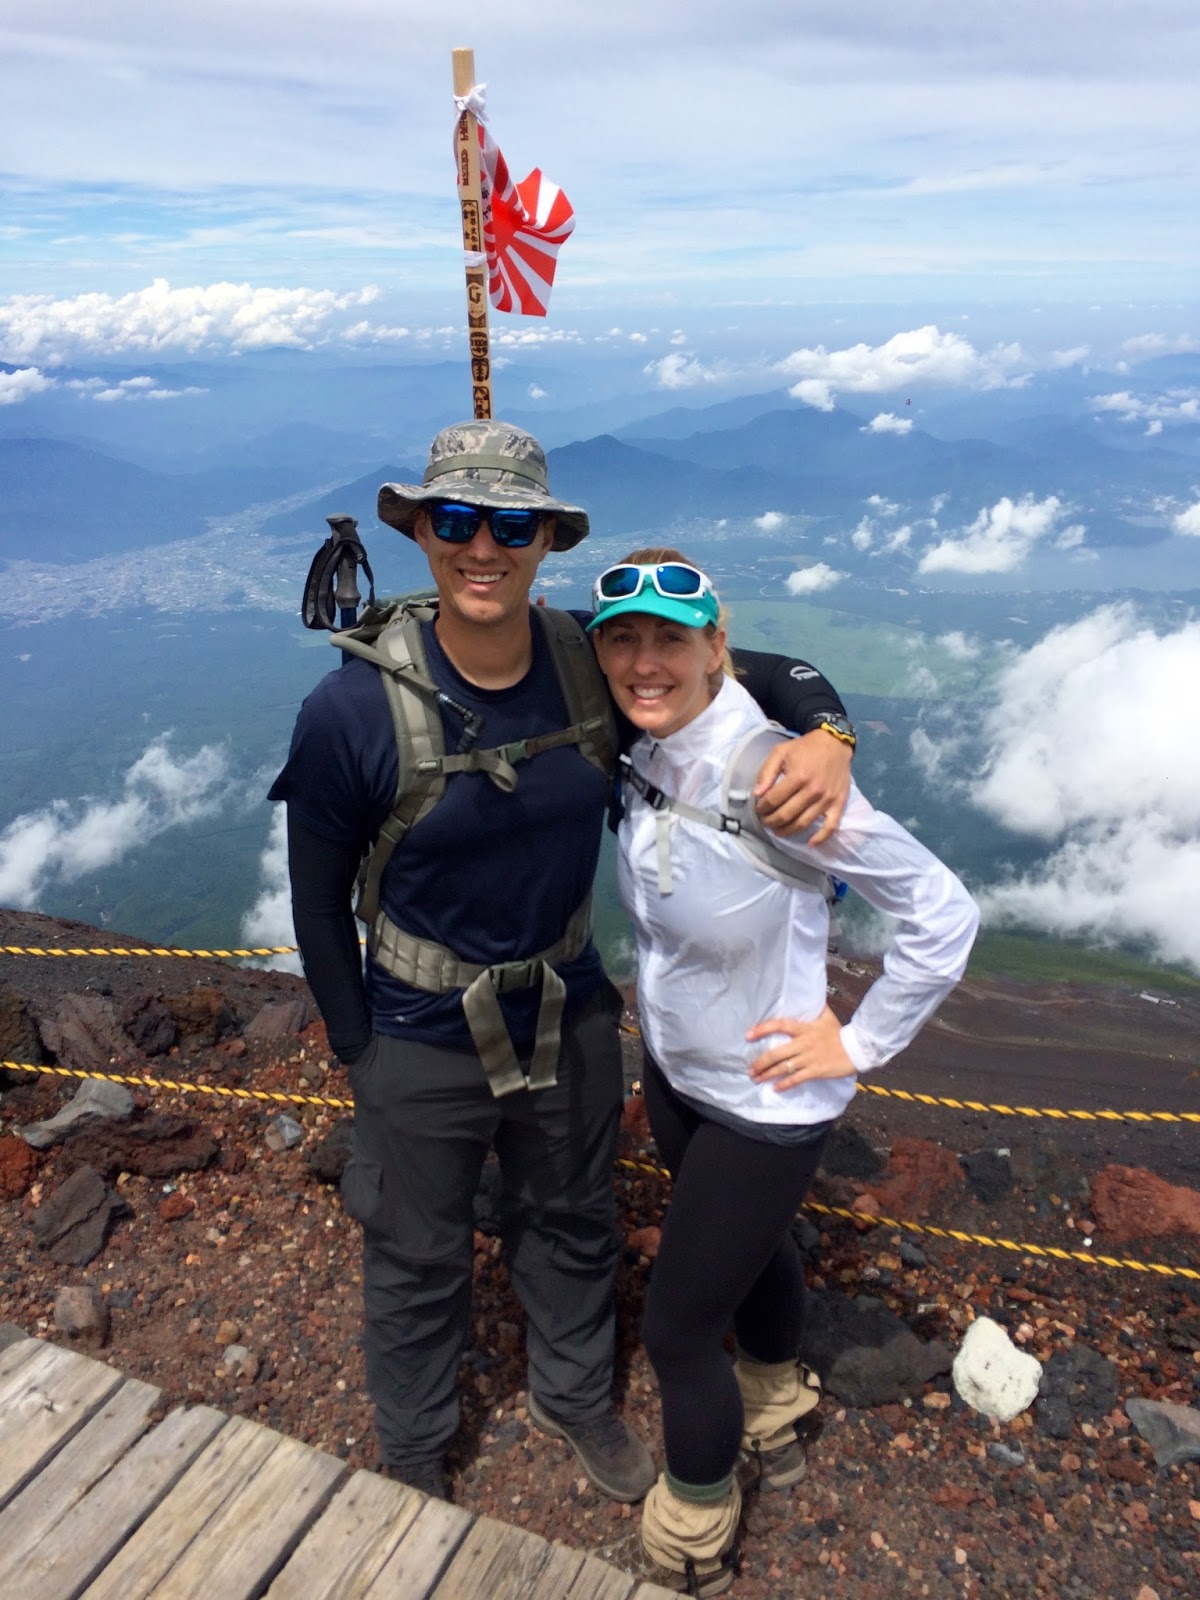 A few weeks ago, Peter and I hiked Mt. Fuji with our friends and IT WAS AWESOME! Words really can't describe the beauty and sheer magnitude of the hike, ...